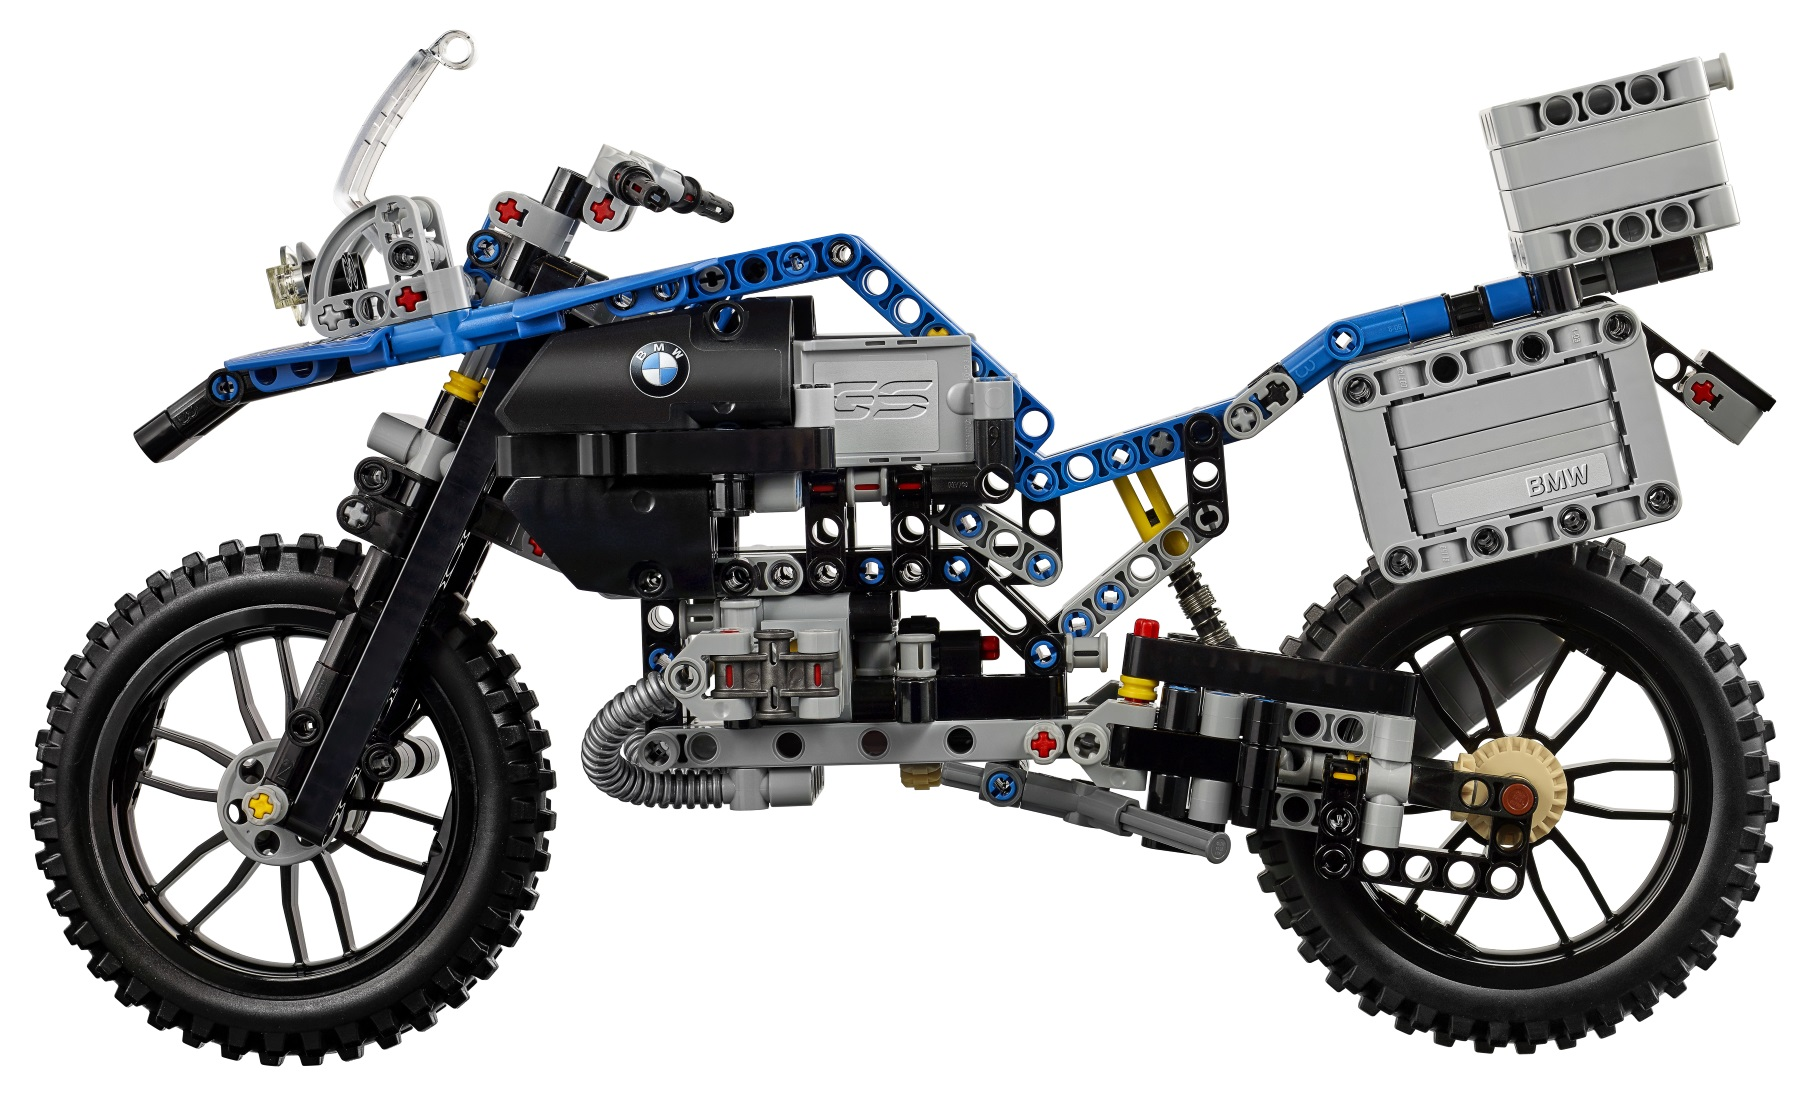 janu rban rkezik a lego technic bmw r 1200 gs adventure. Black Bedroom Furniture Sets. Home Design Ideas